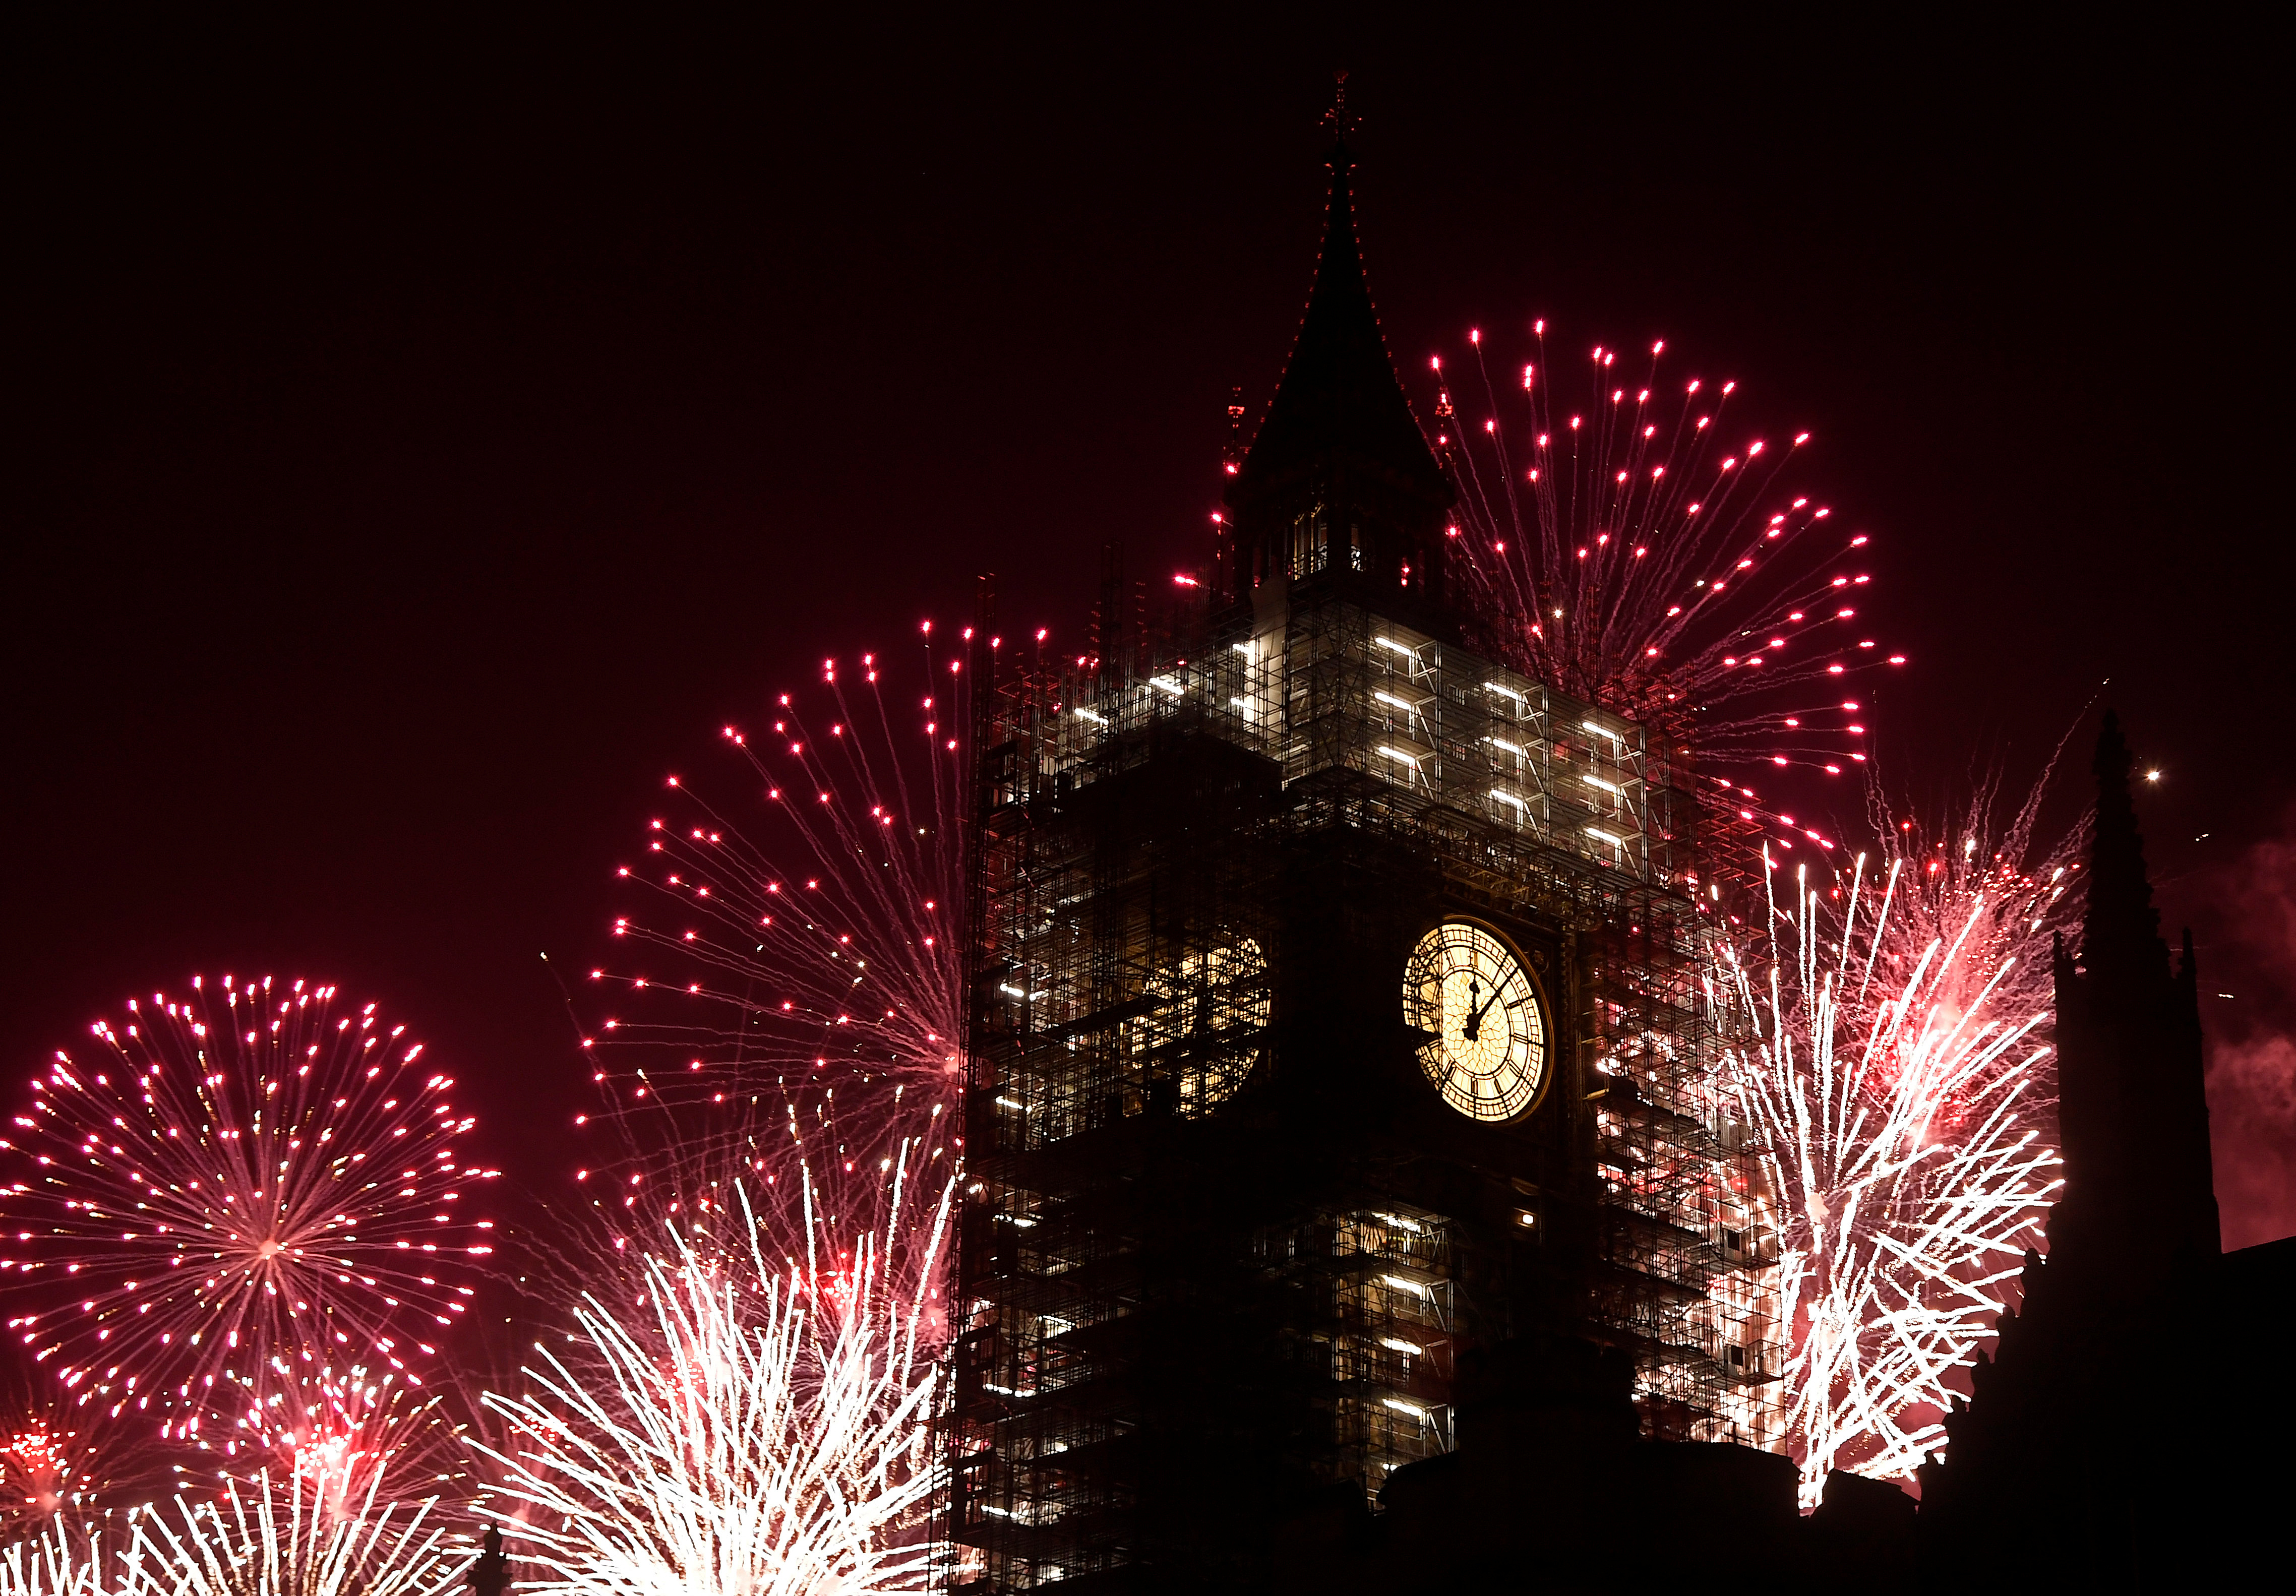 Fireworks explode behind Big Ben during New Year's Eve celebrations in London, Britain. (Image credit: Toby Melville/Reuters)